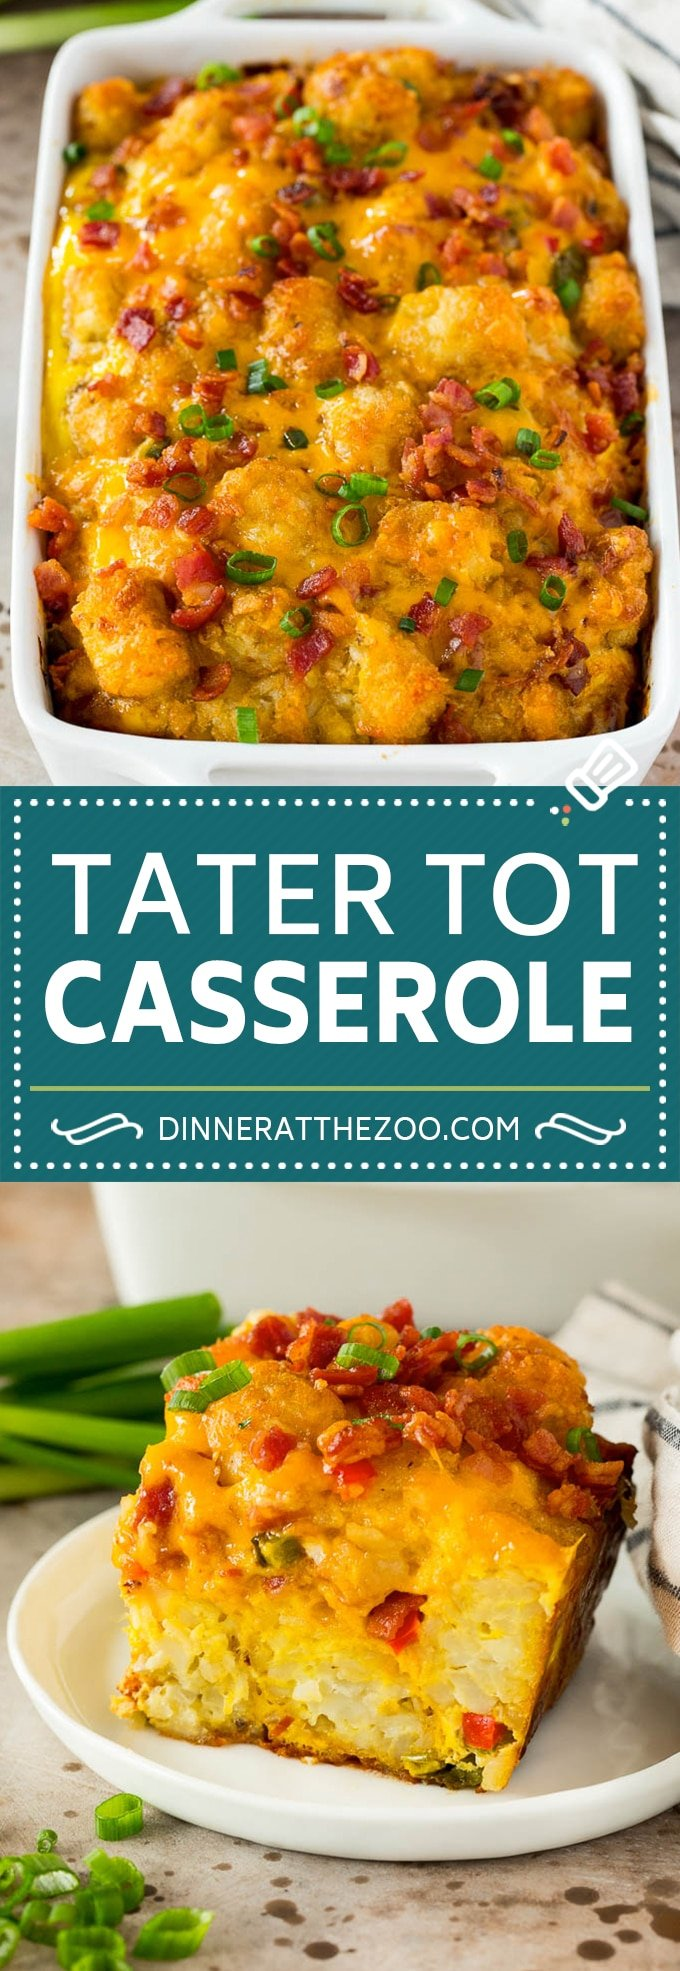 This tater tot breakfast casserole is made with bacon, eggs, veggies, potato tots and plenty of cheese, all baked together.